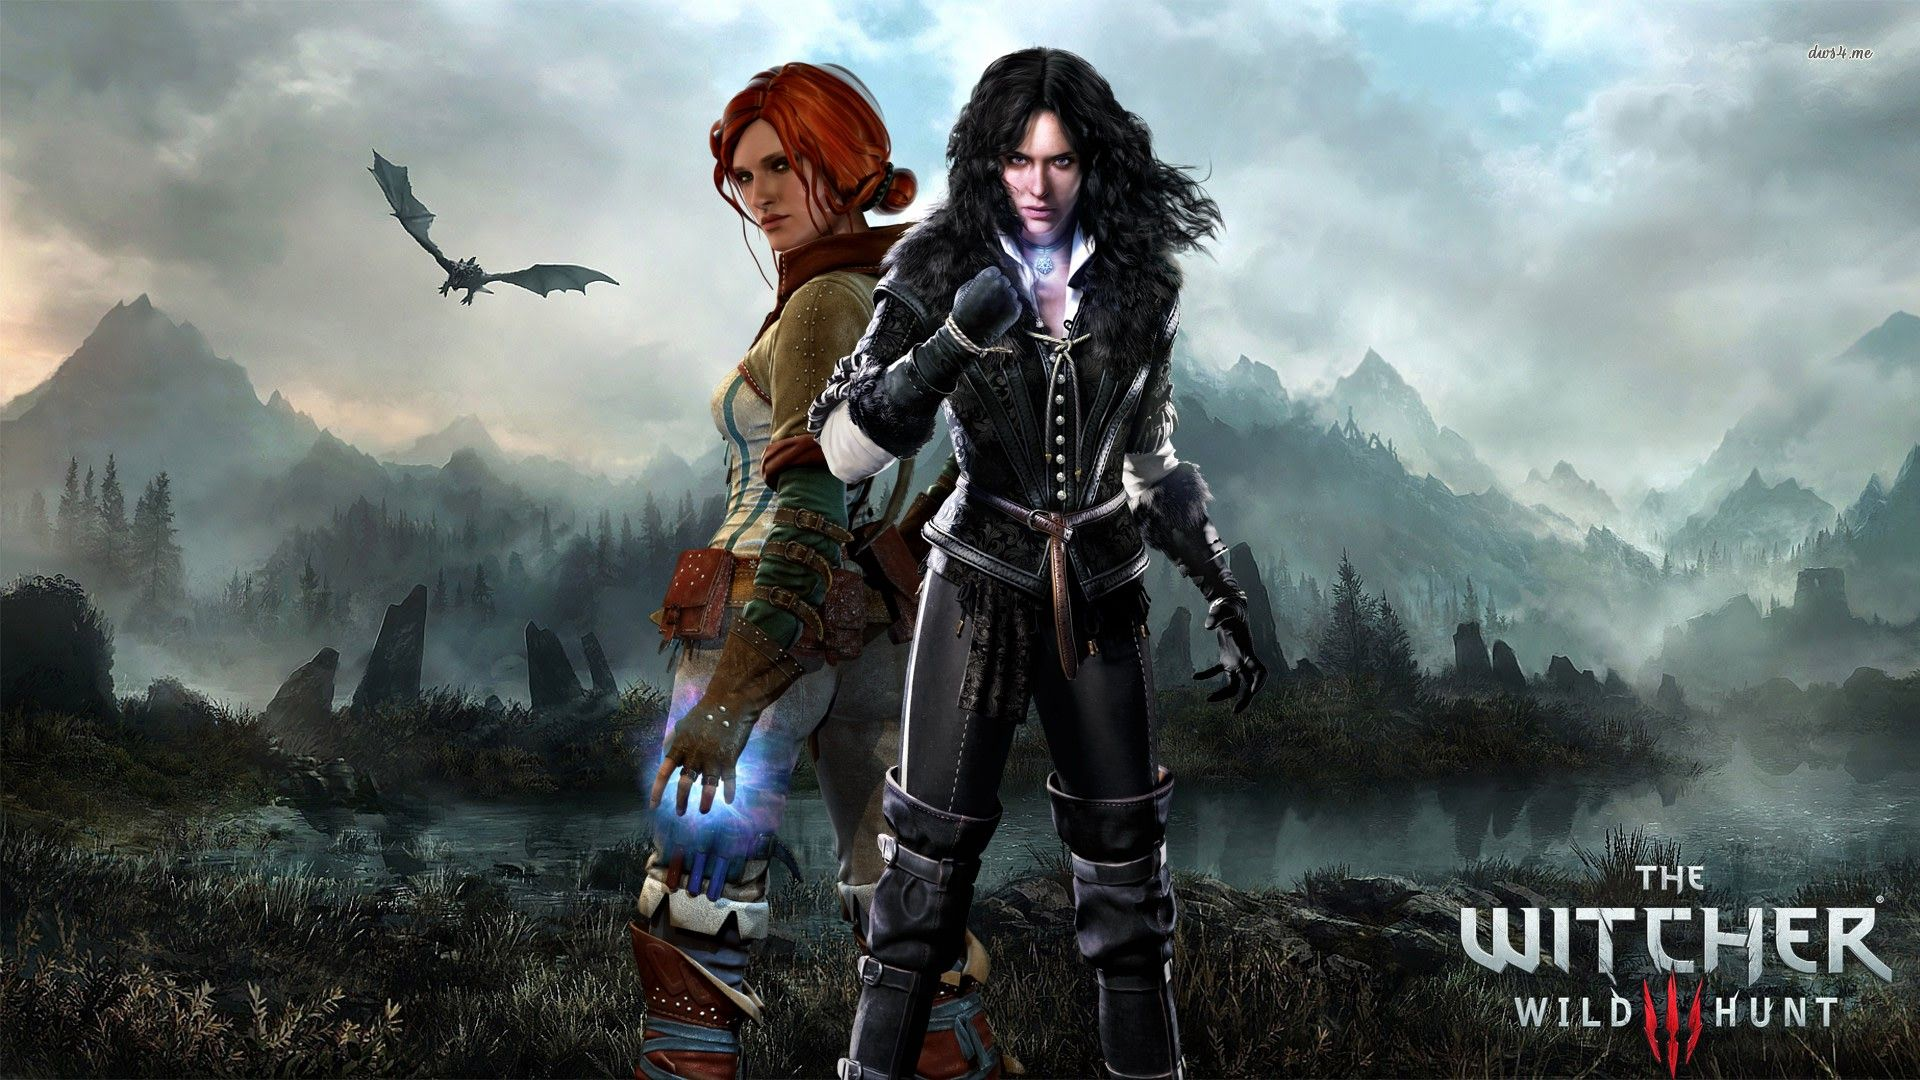 Triss Merigold Hd Wallpaper With Images The Witcher The